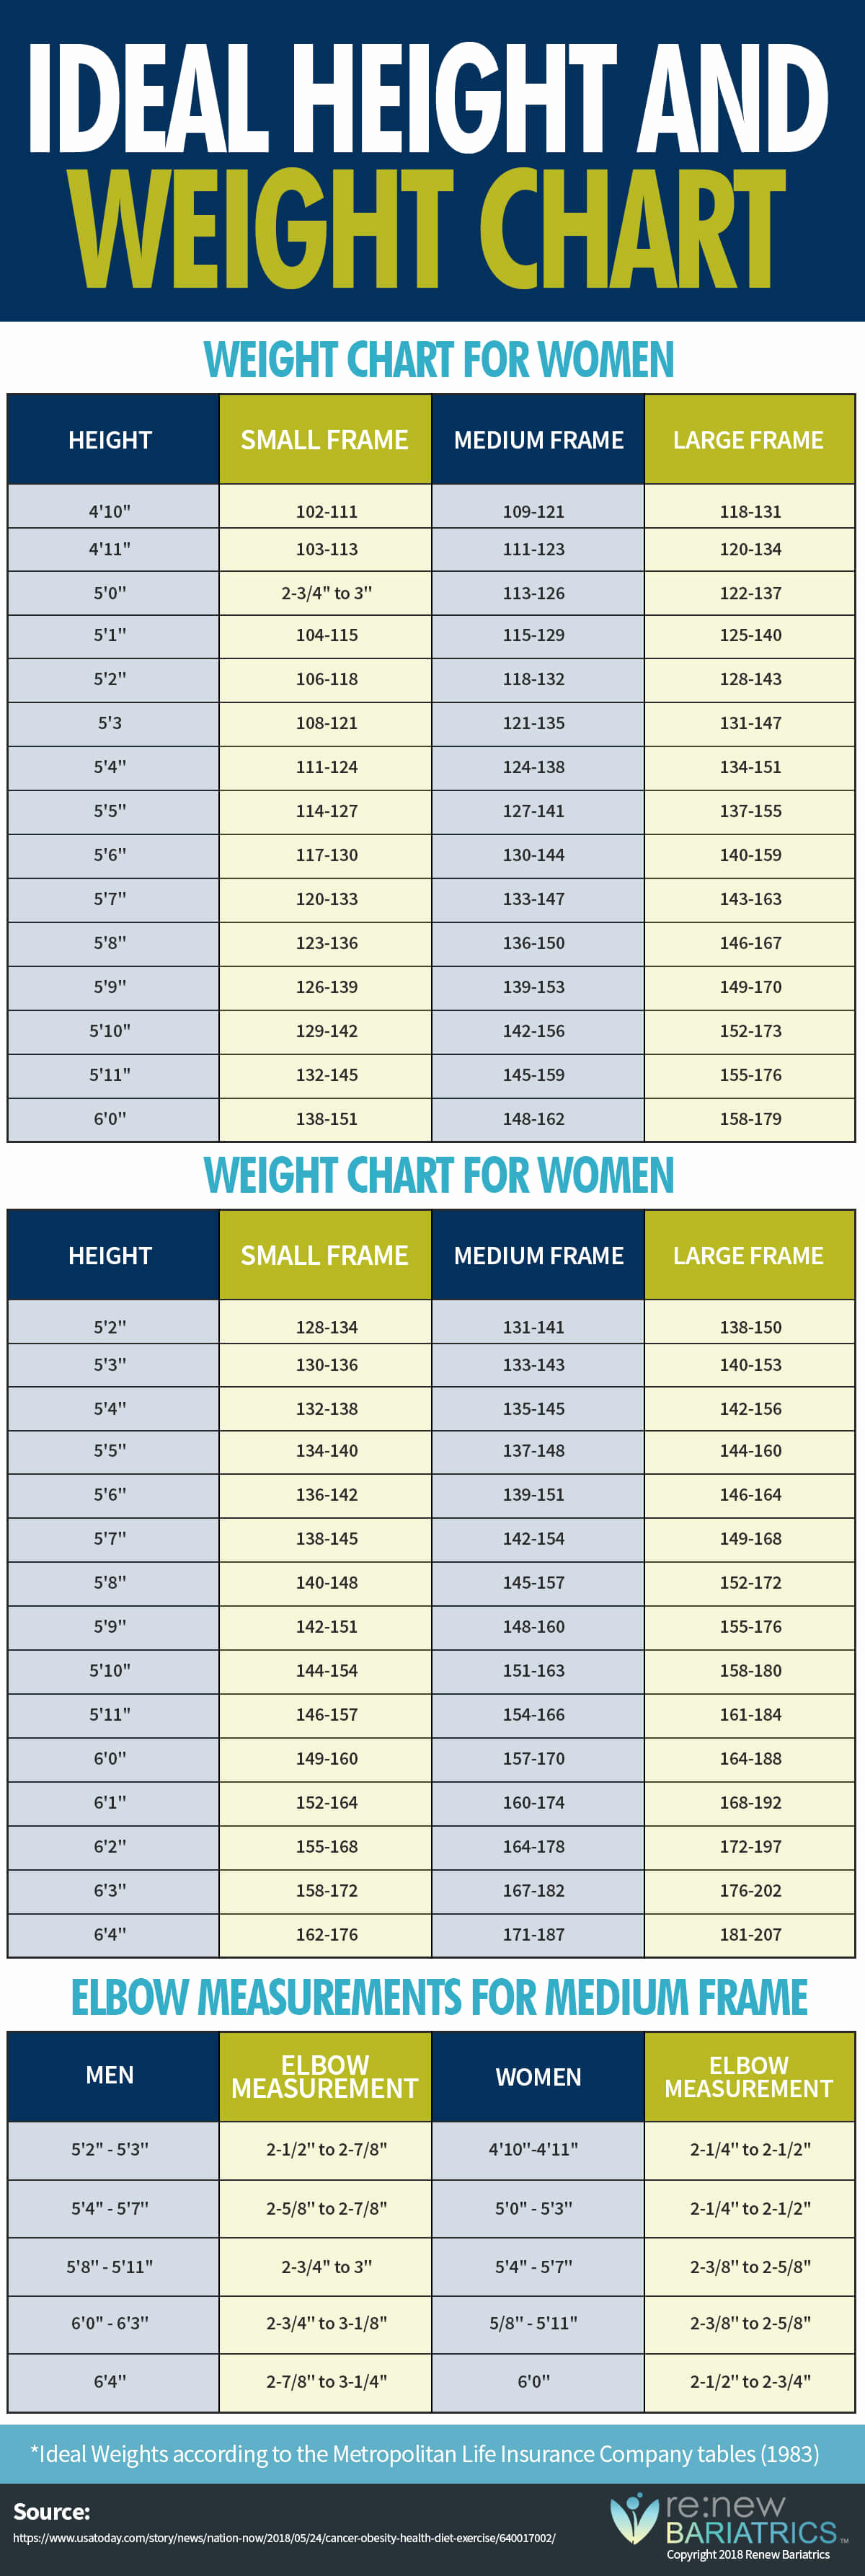 Ideal Height and Weight Chart Awesome Ideal Height & Weight Chart for Body Types [men & Women